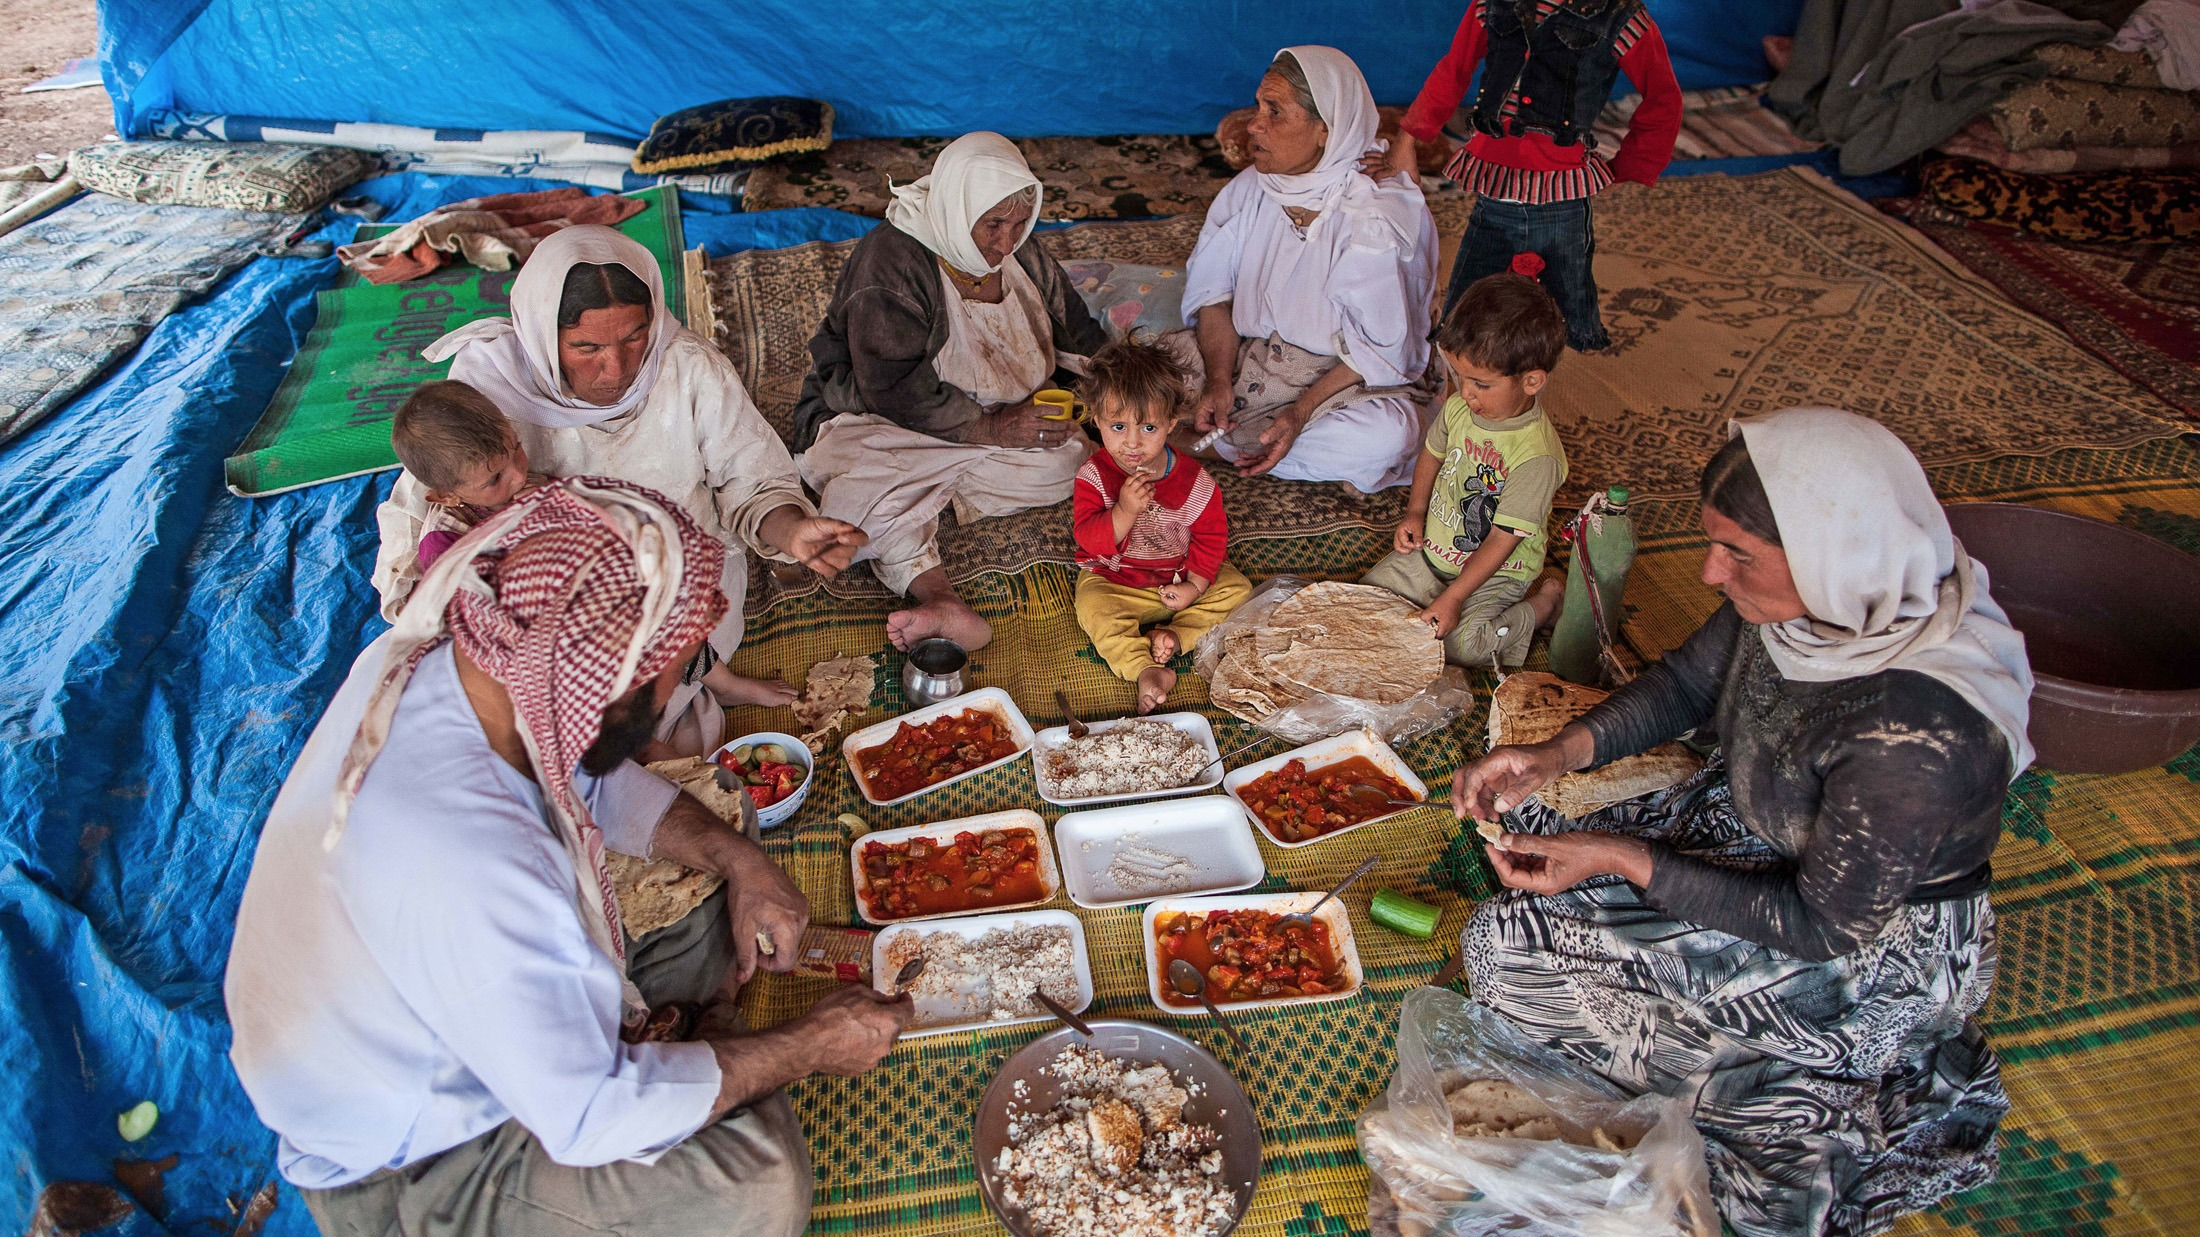 An IDP family shares a meal at Newroz refugee camp, situated next to the town of al-Malikyah in Rojava, Syria